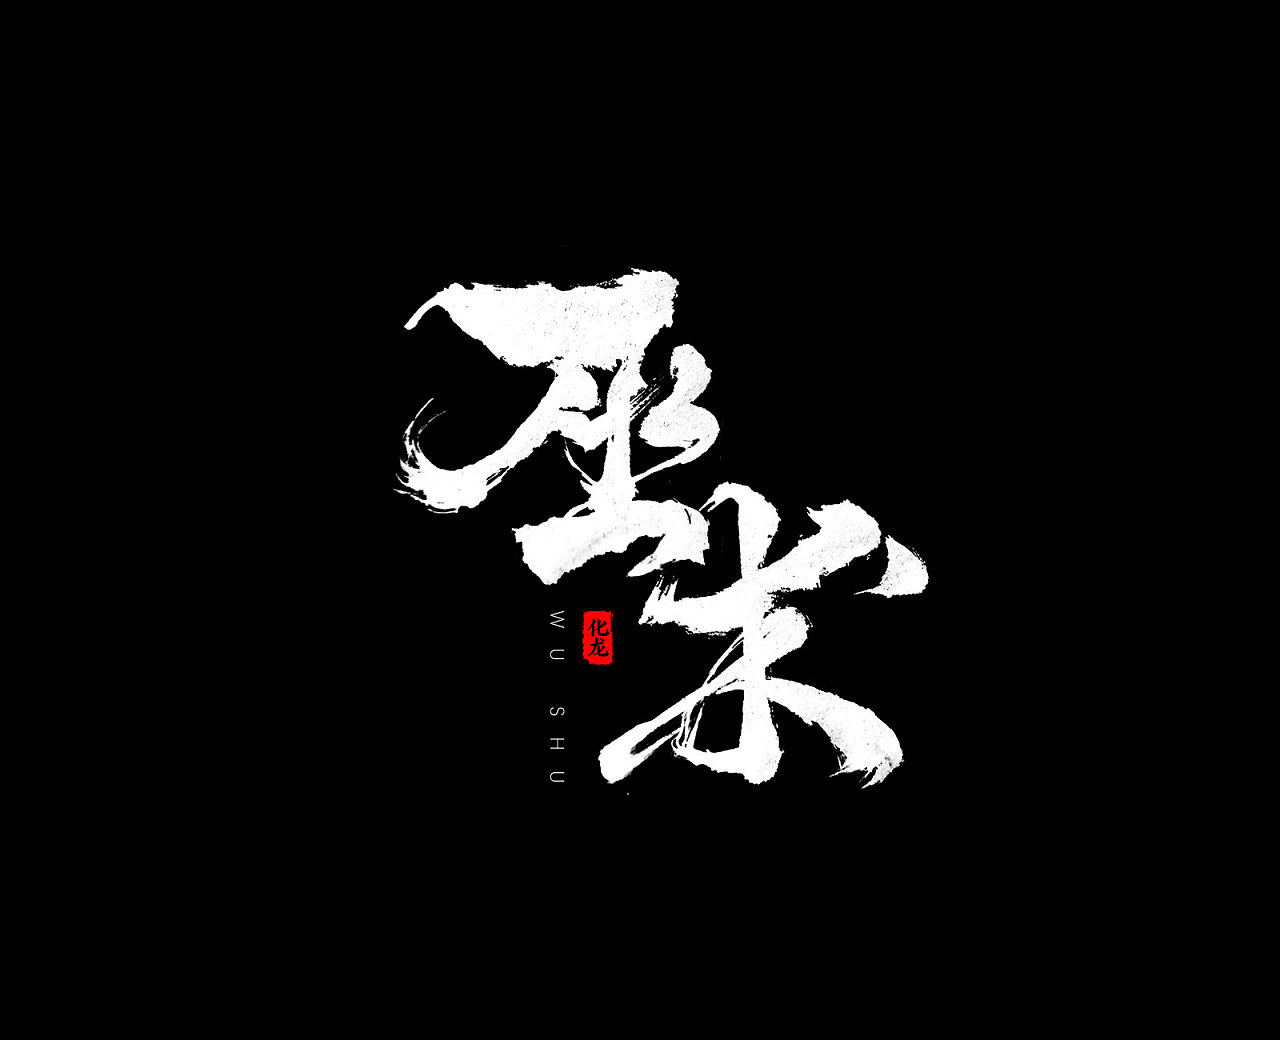 chinesefontdesign.com 2018 01 04 13 18 29 846953 17P Appreciation of Chinese dragon super cool brush calligraphy